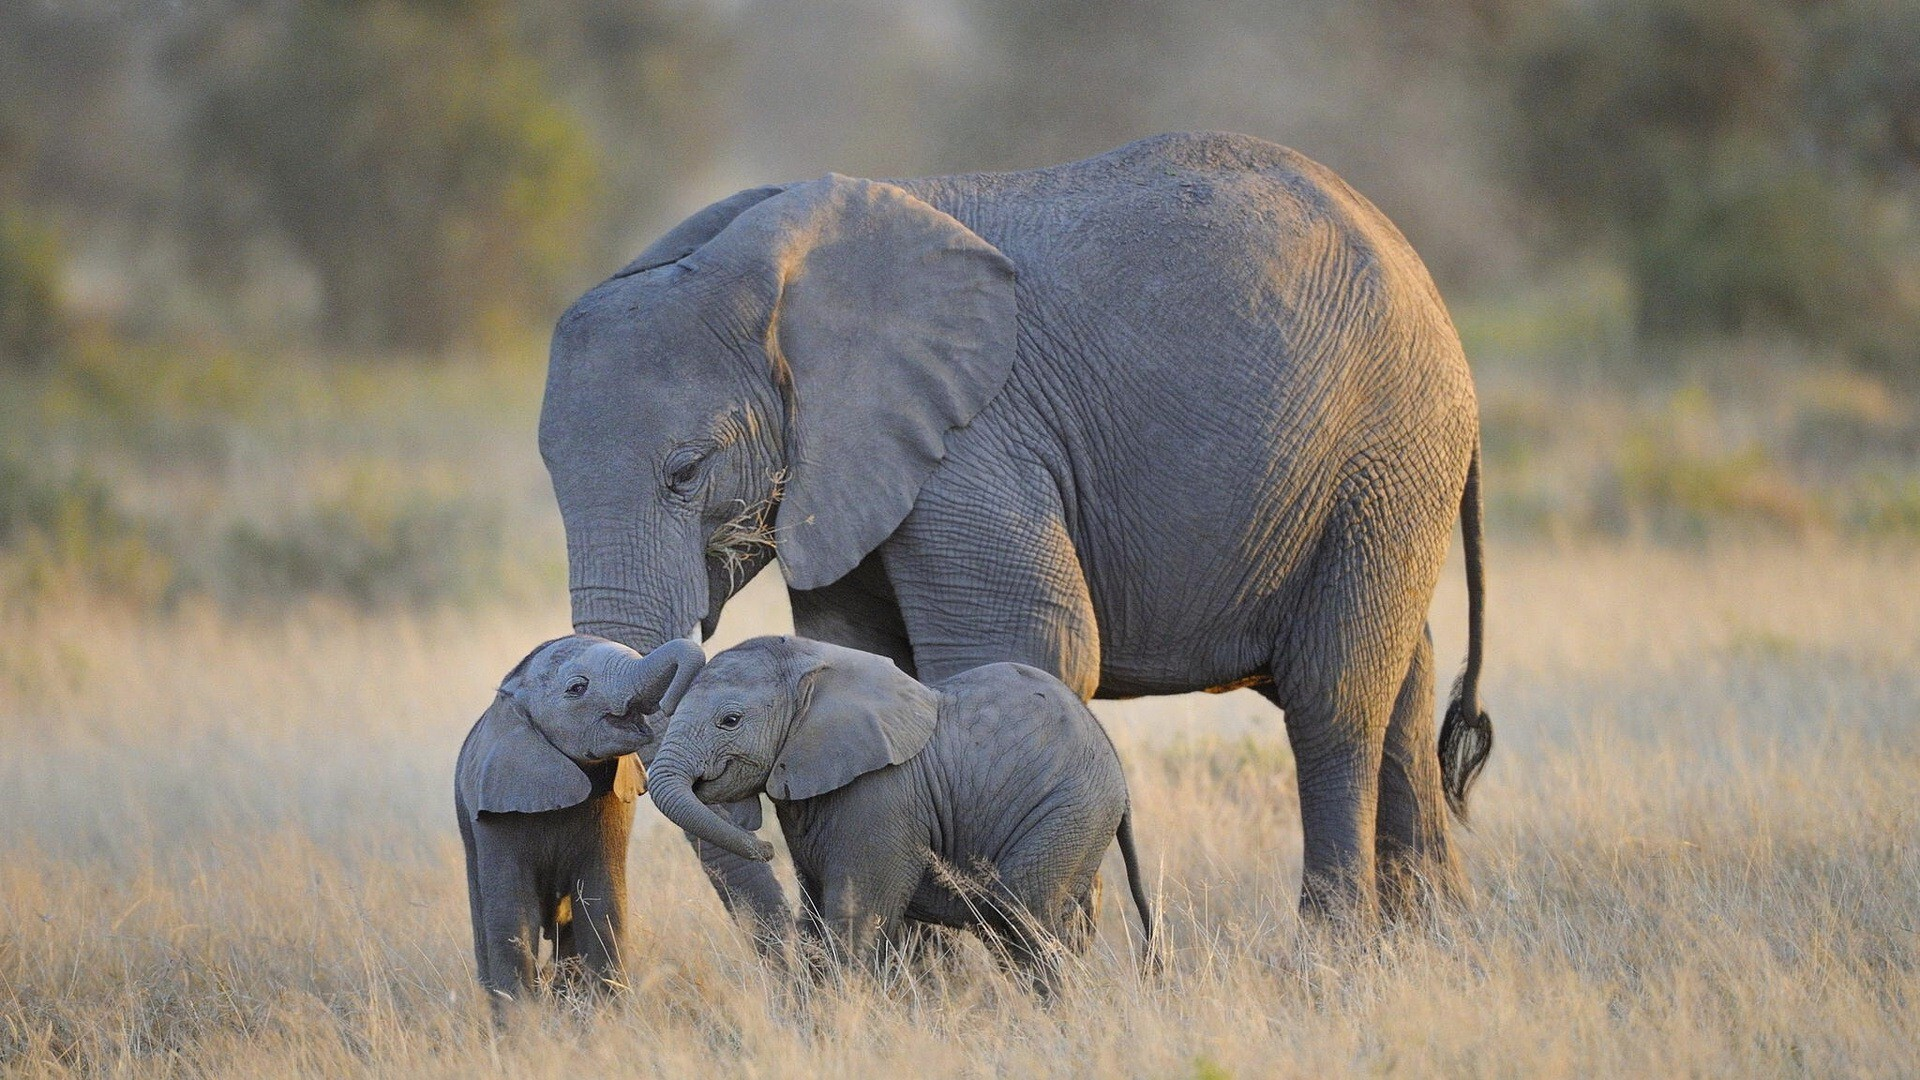 Two elephant baby playing wallpaper hd wallpapers - Baby elephant wallpaper ...